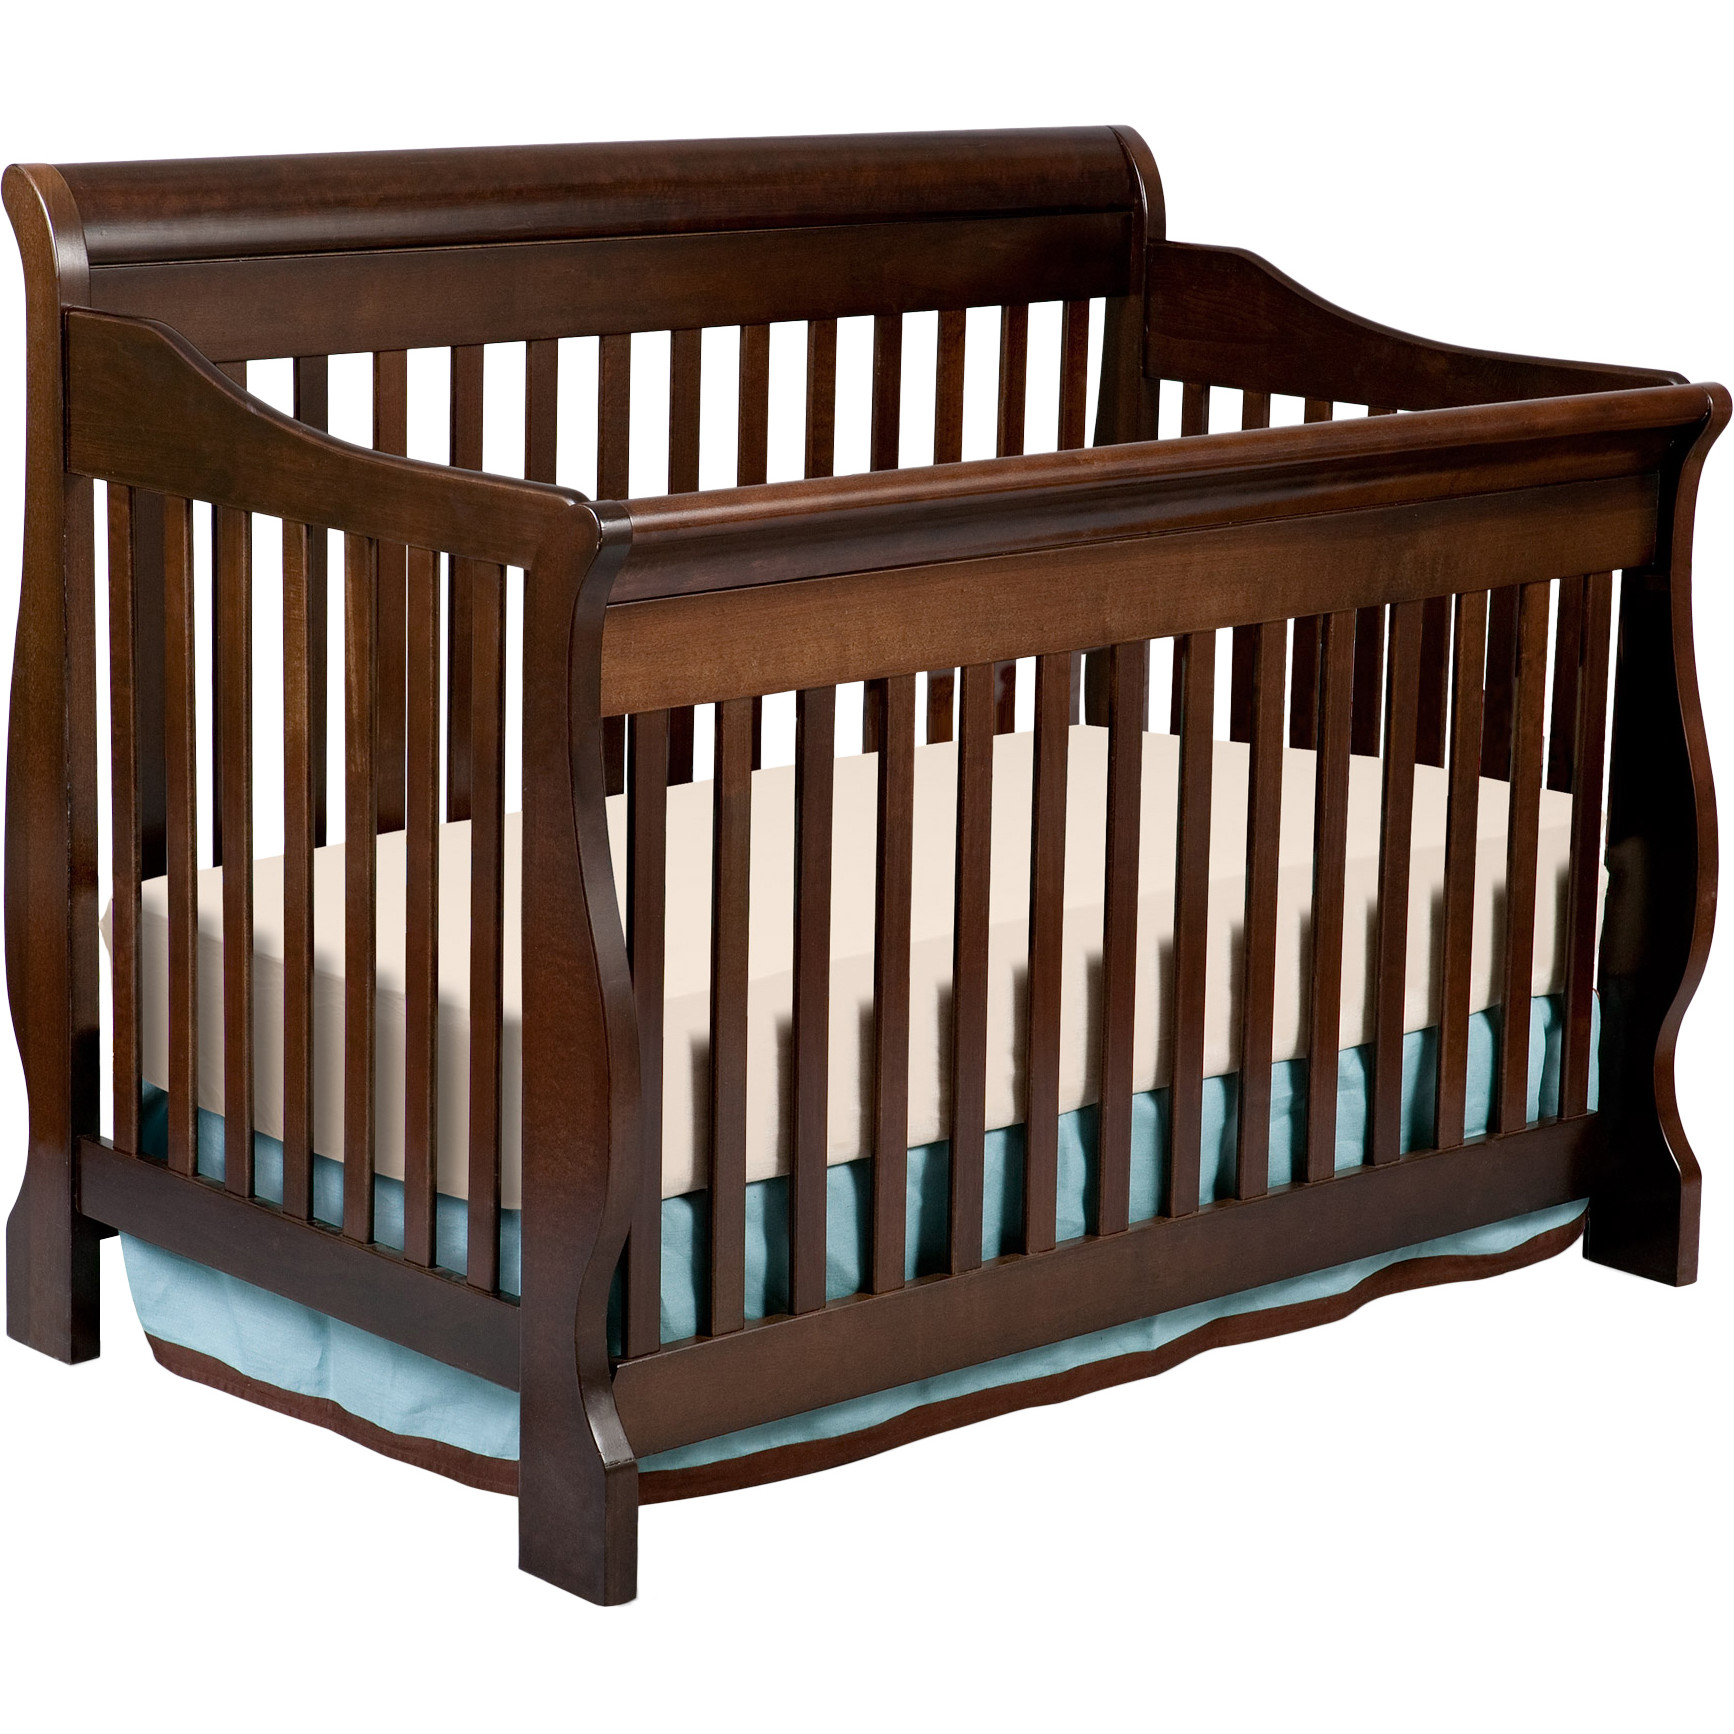 Charming Baby Cache Heritage Lifetime Convertible Crib for Best Baby Crib Choice: Baby Cache Heritage Lifetime Convertible Crib | Babies R Us Baby Furniture | Baby Cache Montana Dresser